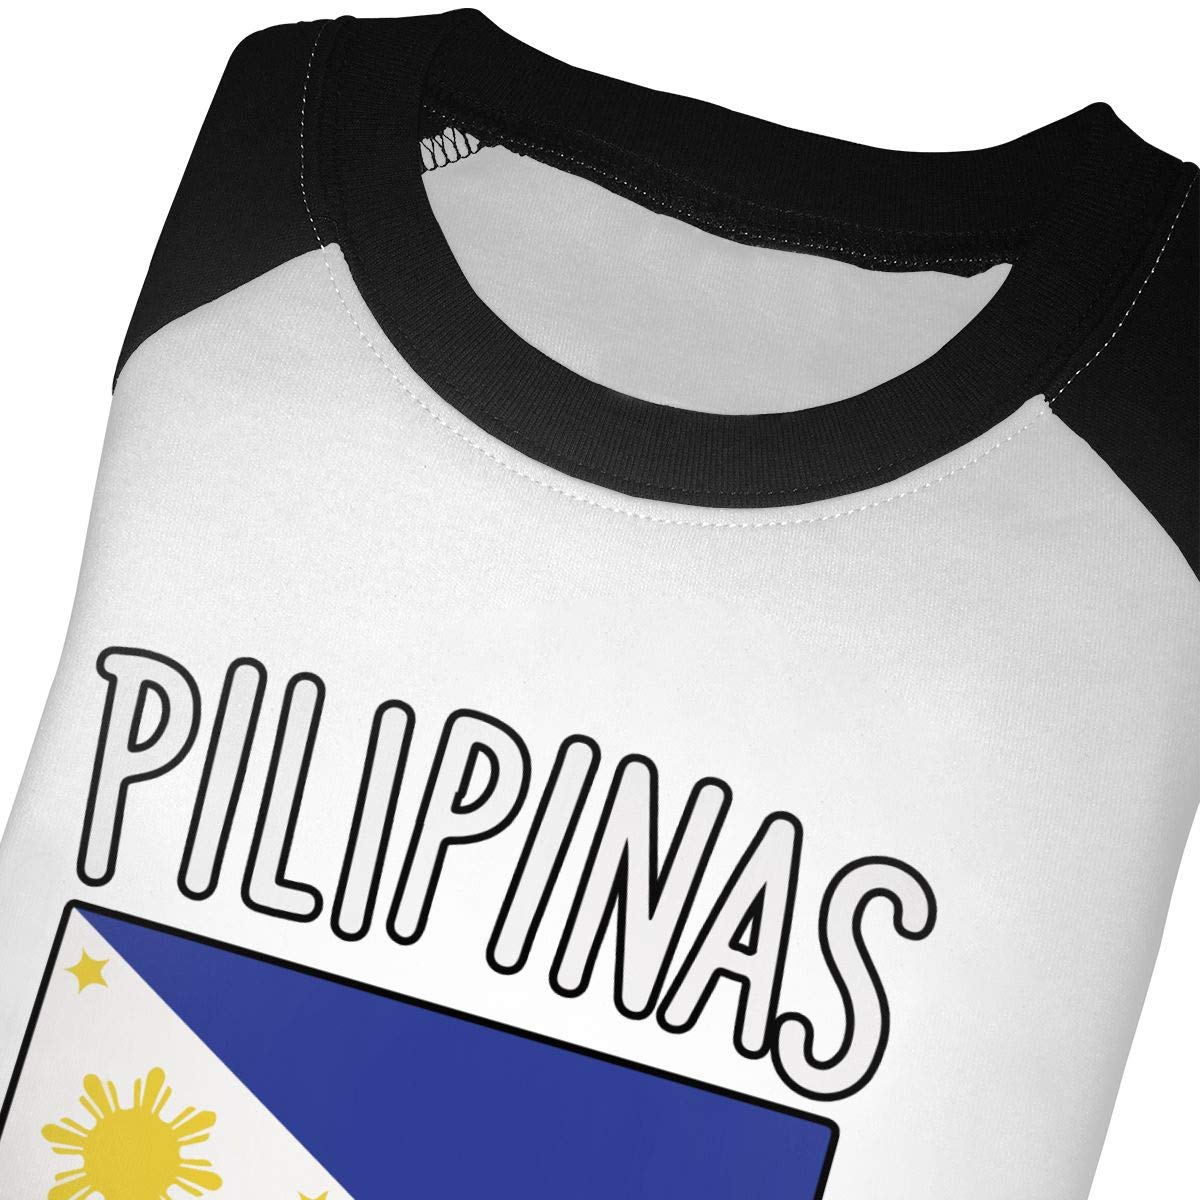 QPKMRTZTX0 Boys Girls Kids /& Toddler Philippines Flag1-1 Long Sleeve Tees 100/% Cotton